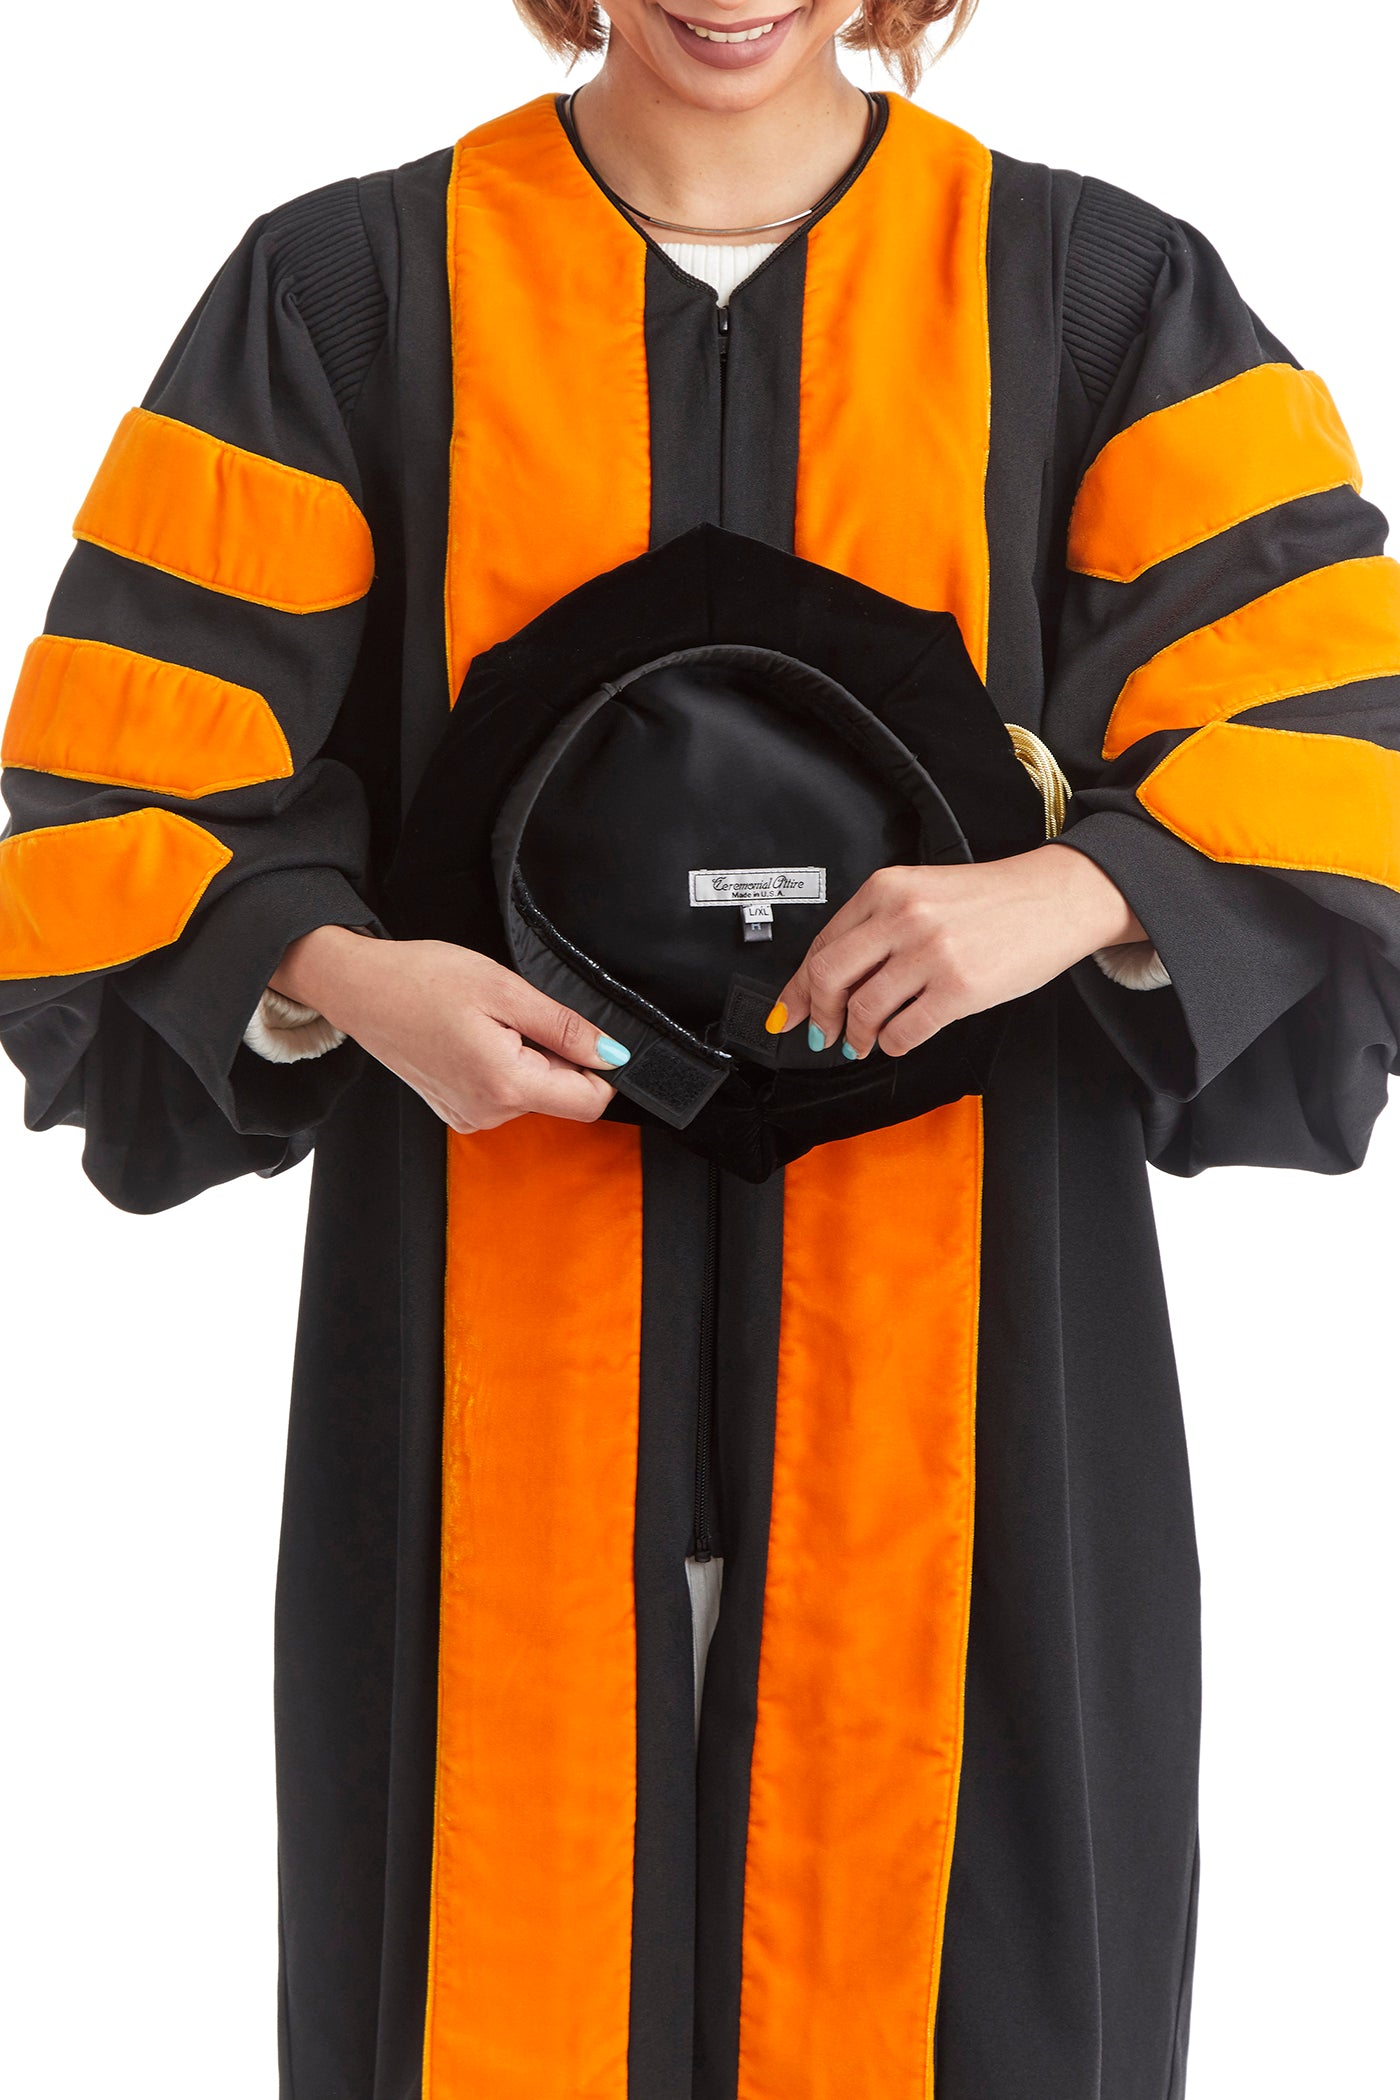 Princeton University 8-Sided Doctoral Tam (Cap) with Silk Tassel